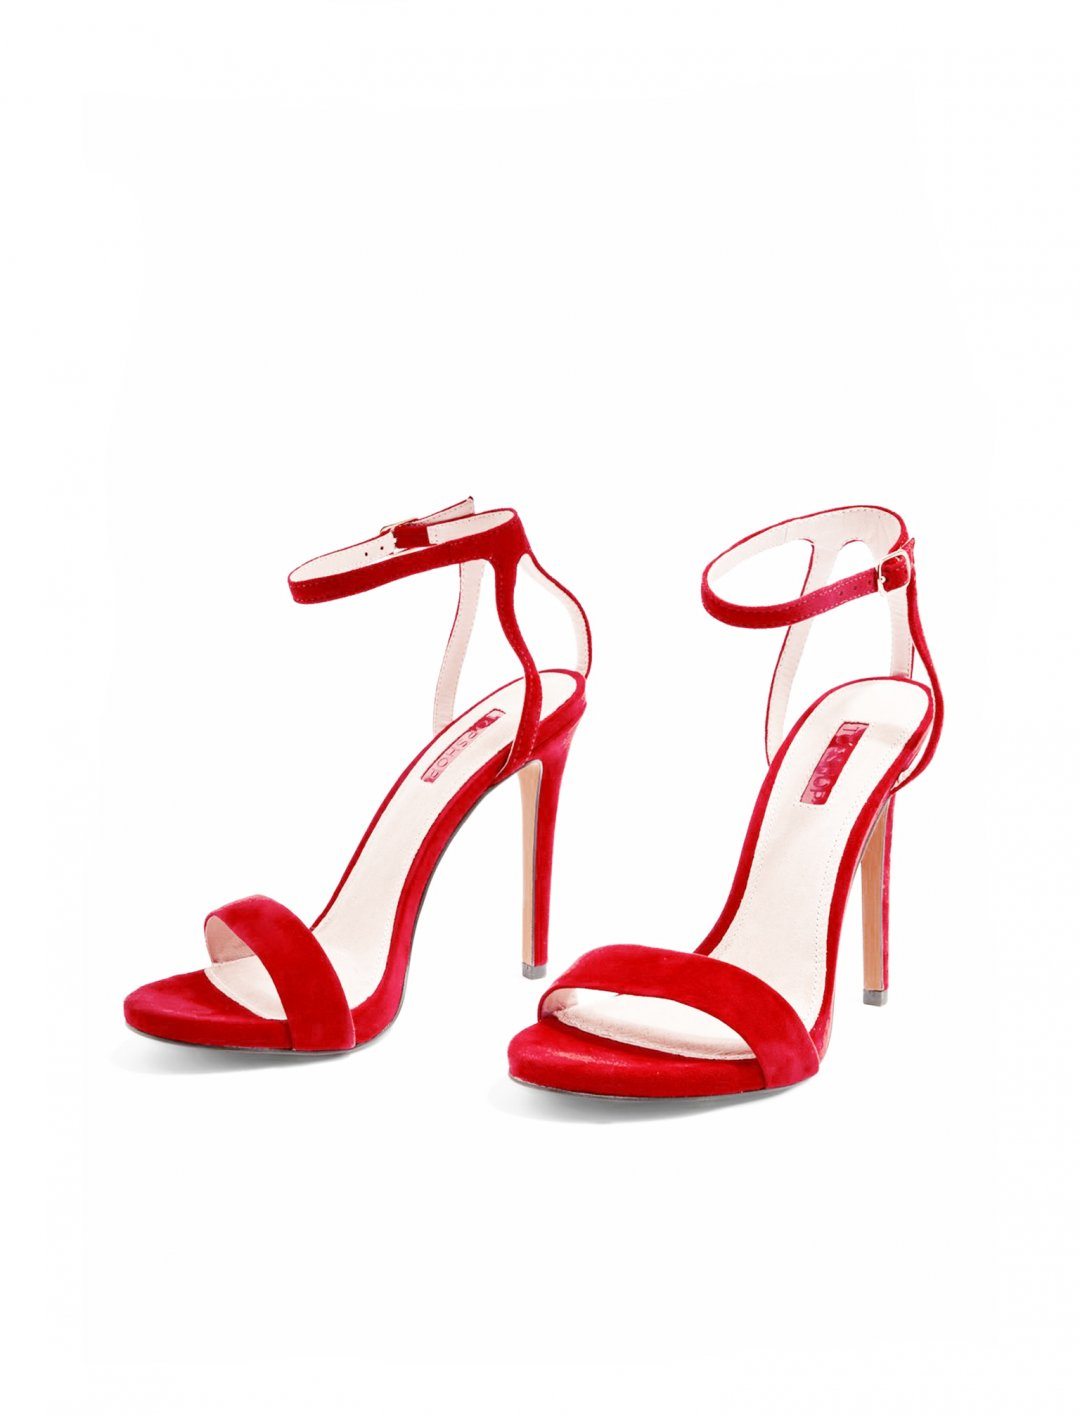 """Topshop Heeled Sandals {""""id"""":12,""""product_section_id"""":1,""""name"""":""""Shoes"""",""""order"""":12} Topshop"""